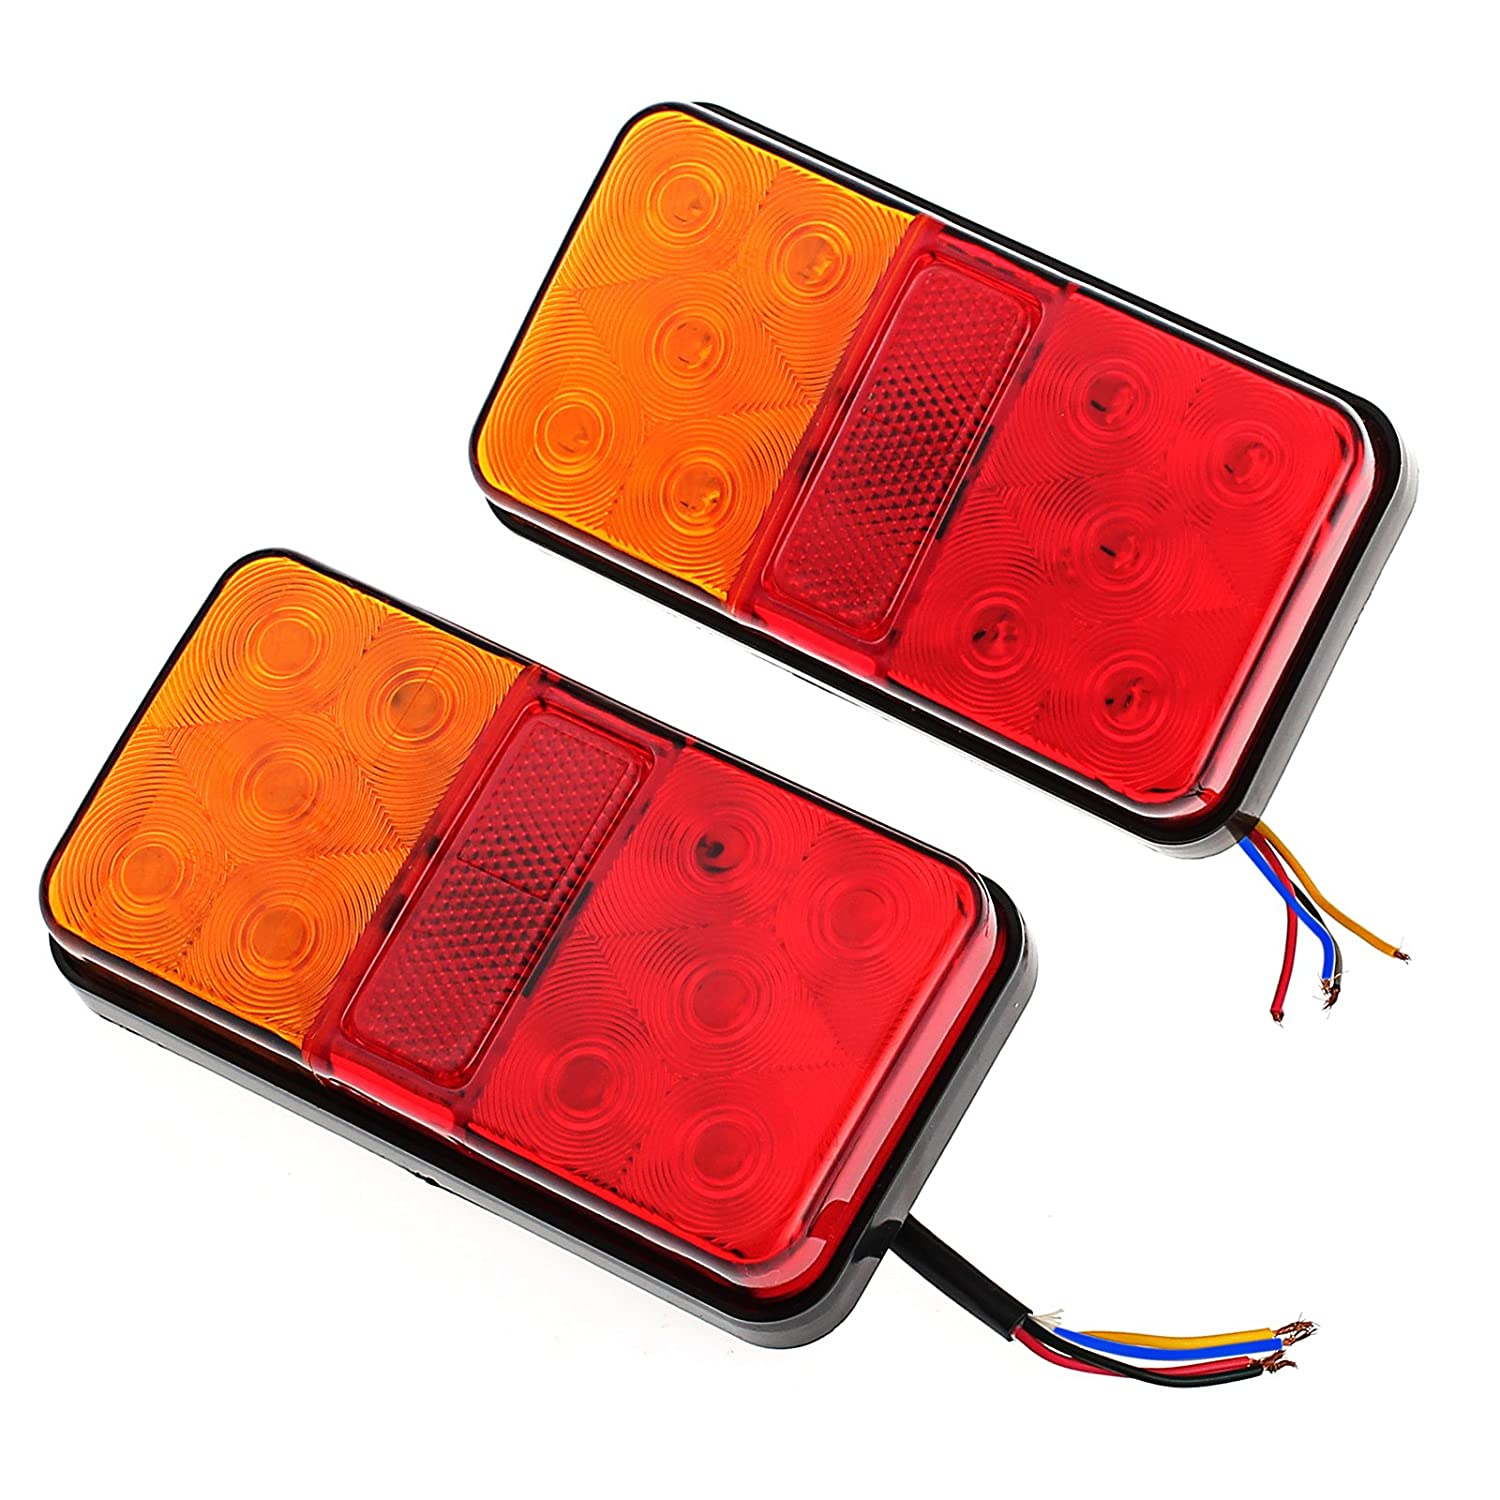 Justech 2 X 12V Van Truck Trailer Lorry 40 LED Rear Tail Stop Light Lamp Indicator E11 MY084-J